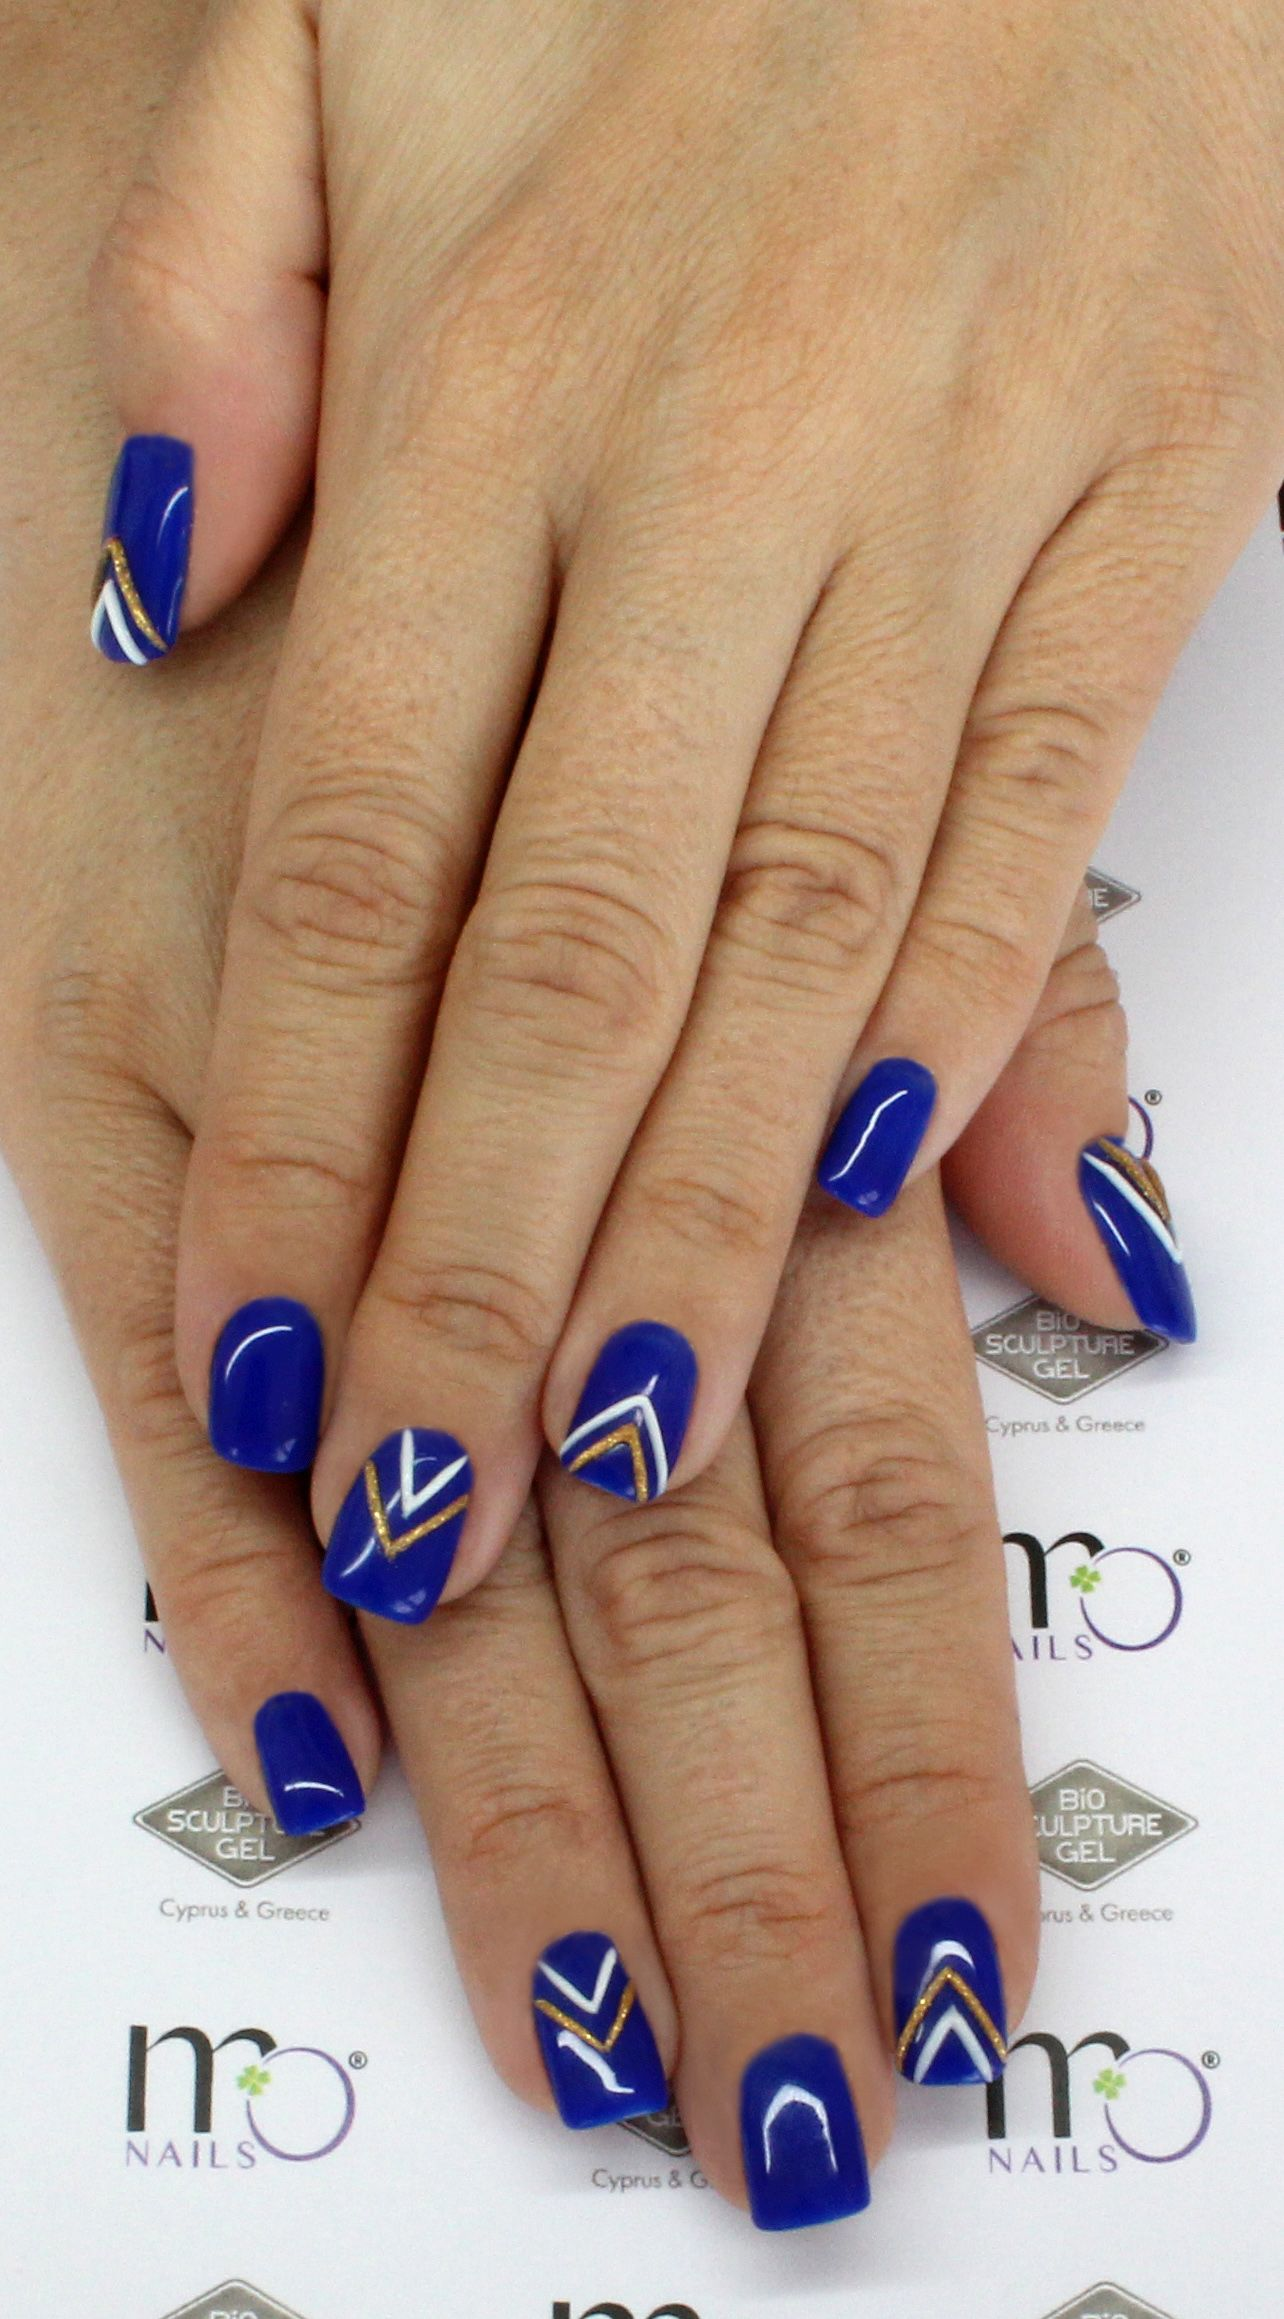 MO Nails #B6 Azure Blue with Emboss Gel #12 Royal Gold and #1 Solid ...